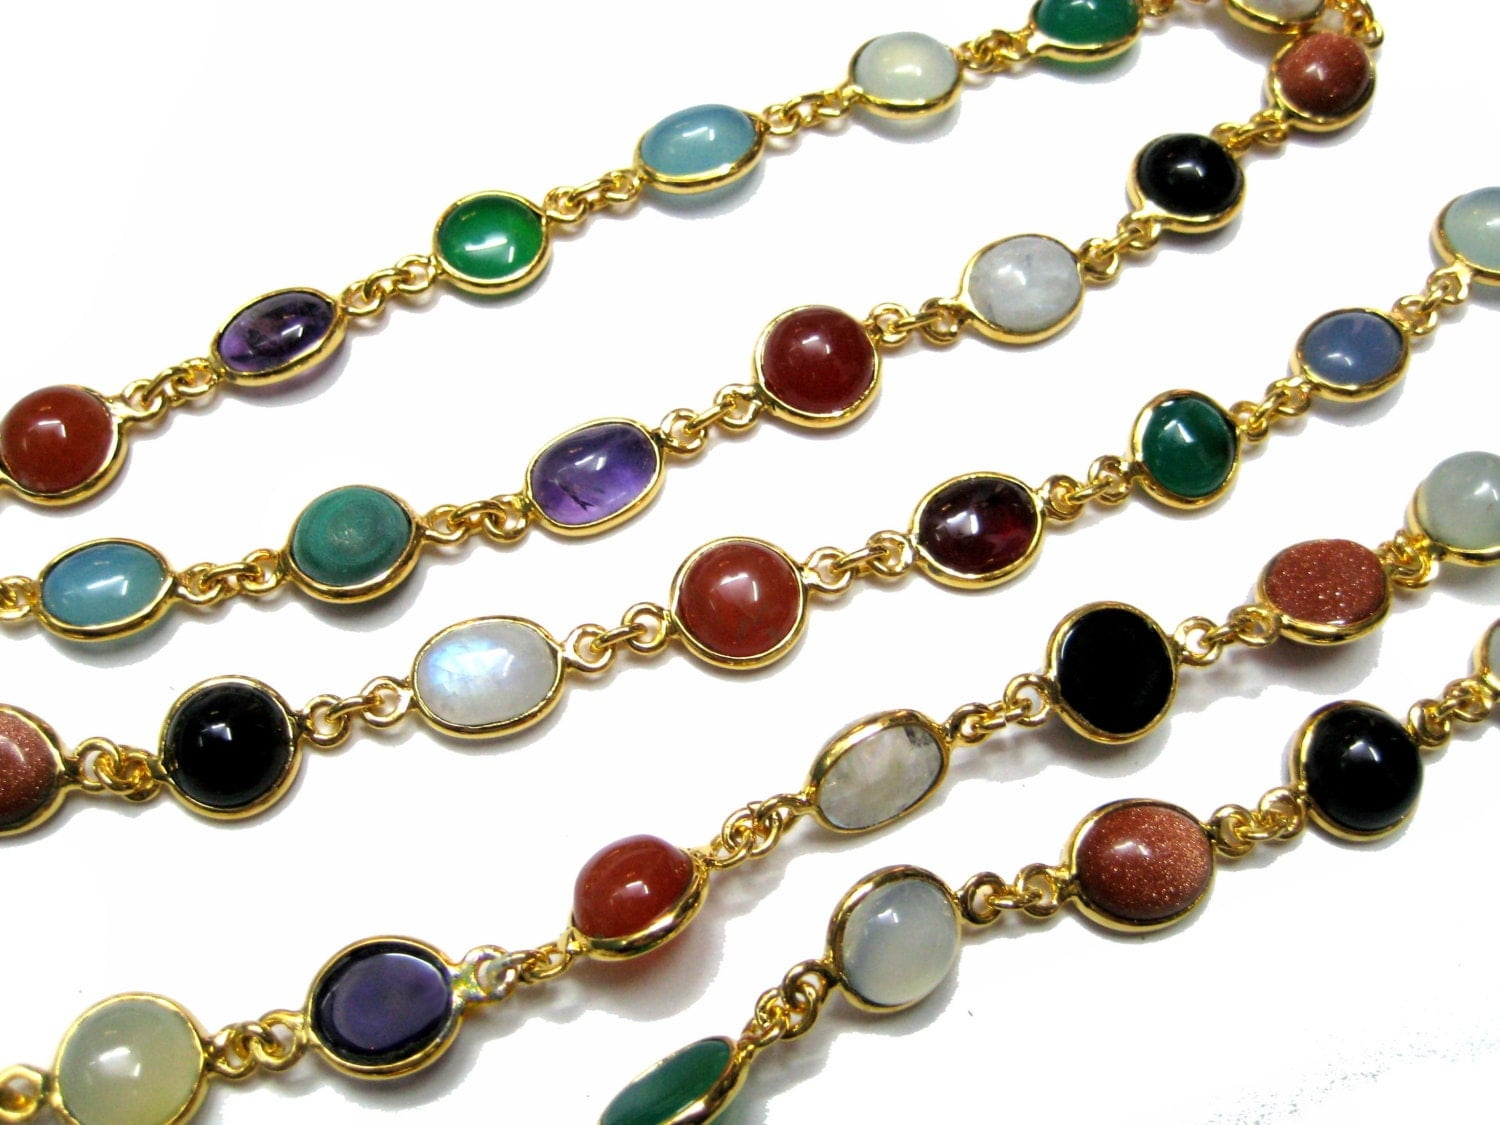 12 inches long gold plated cabochons gemstone bezelled for Bulk jewelry chain canada